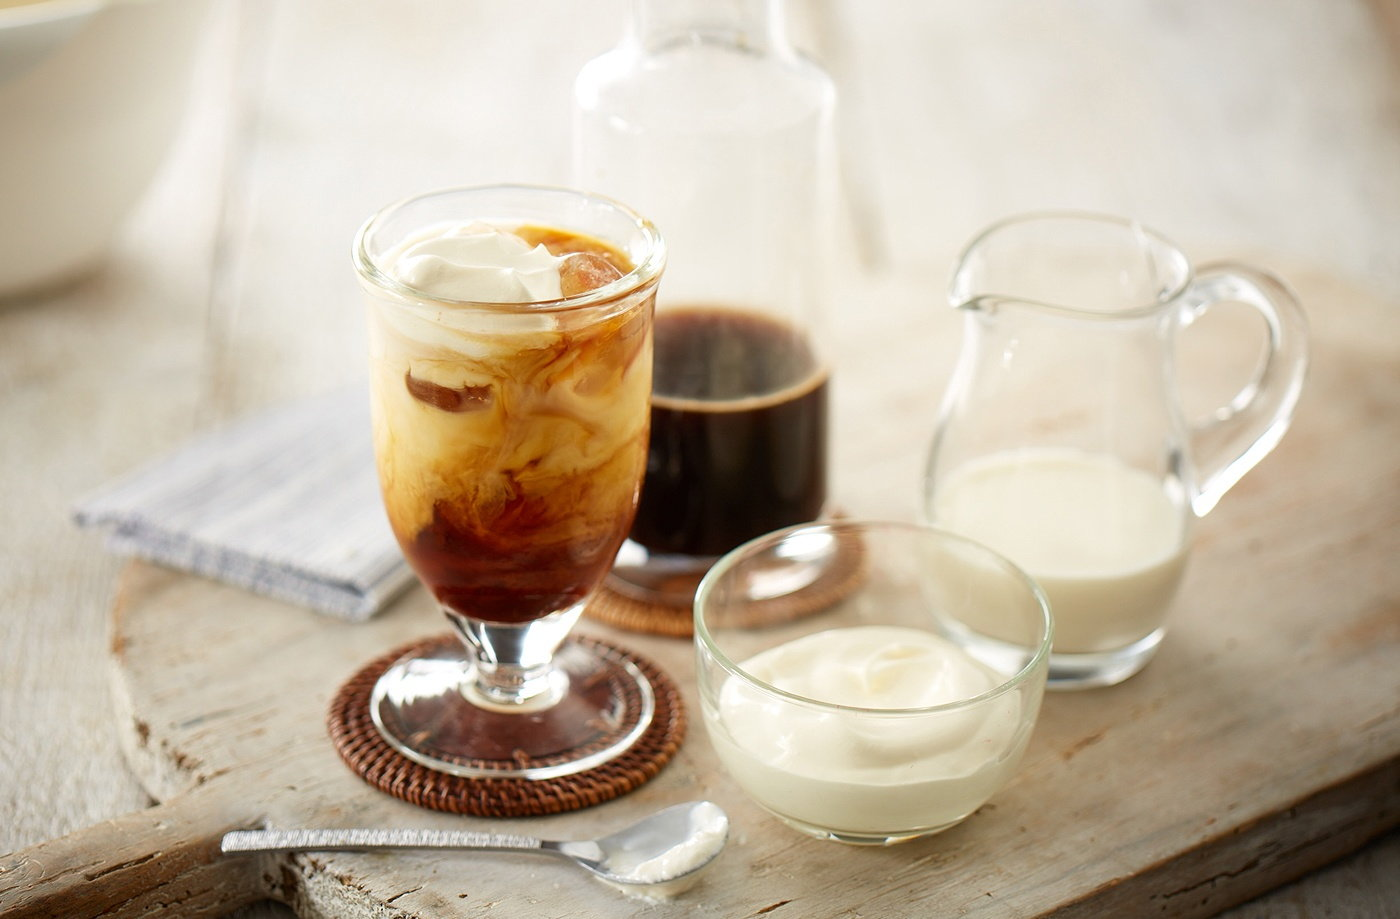 Real iced coffee